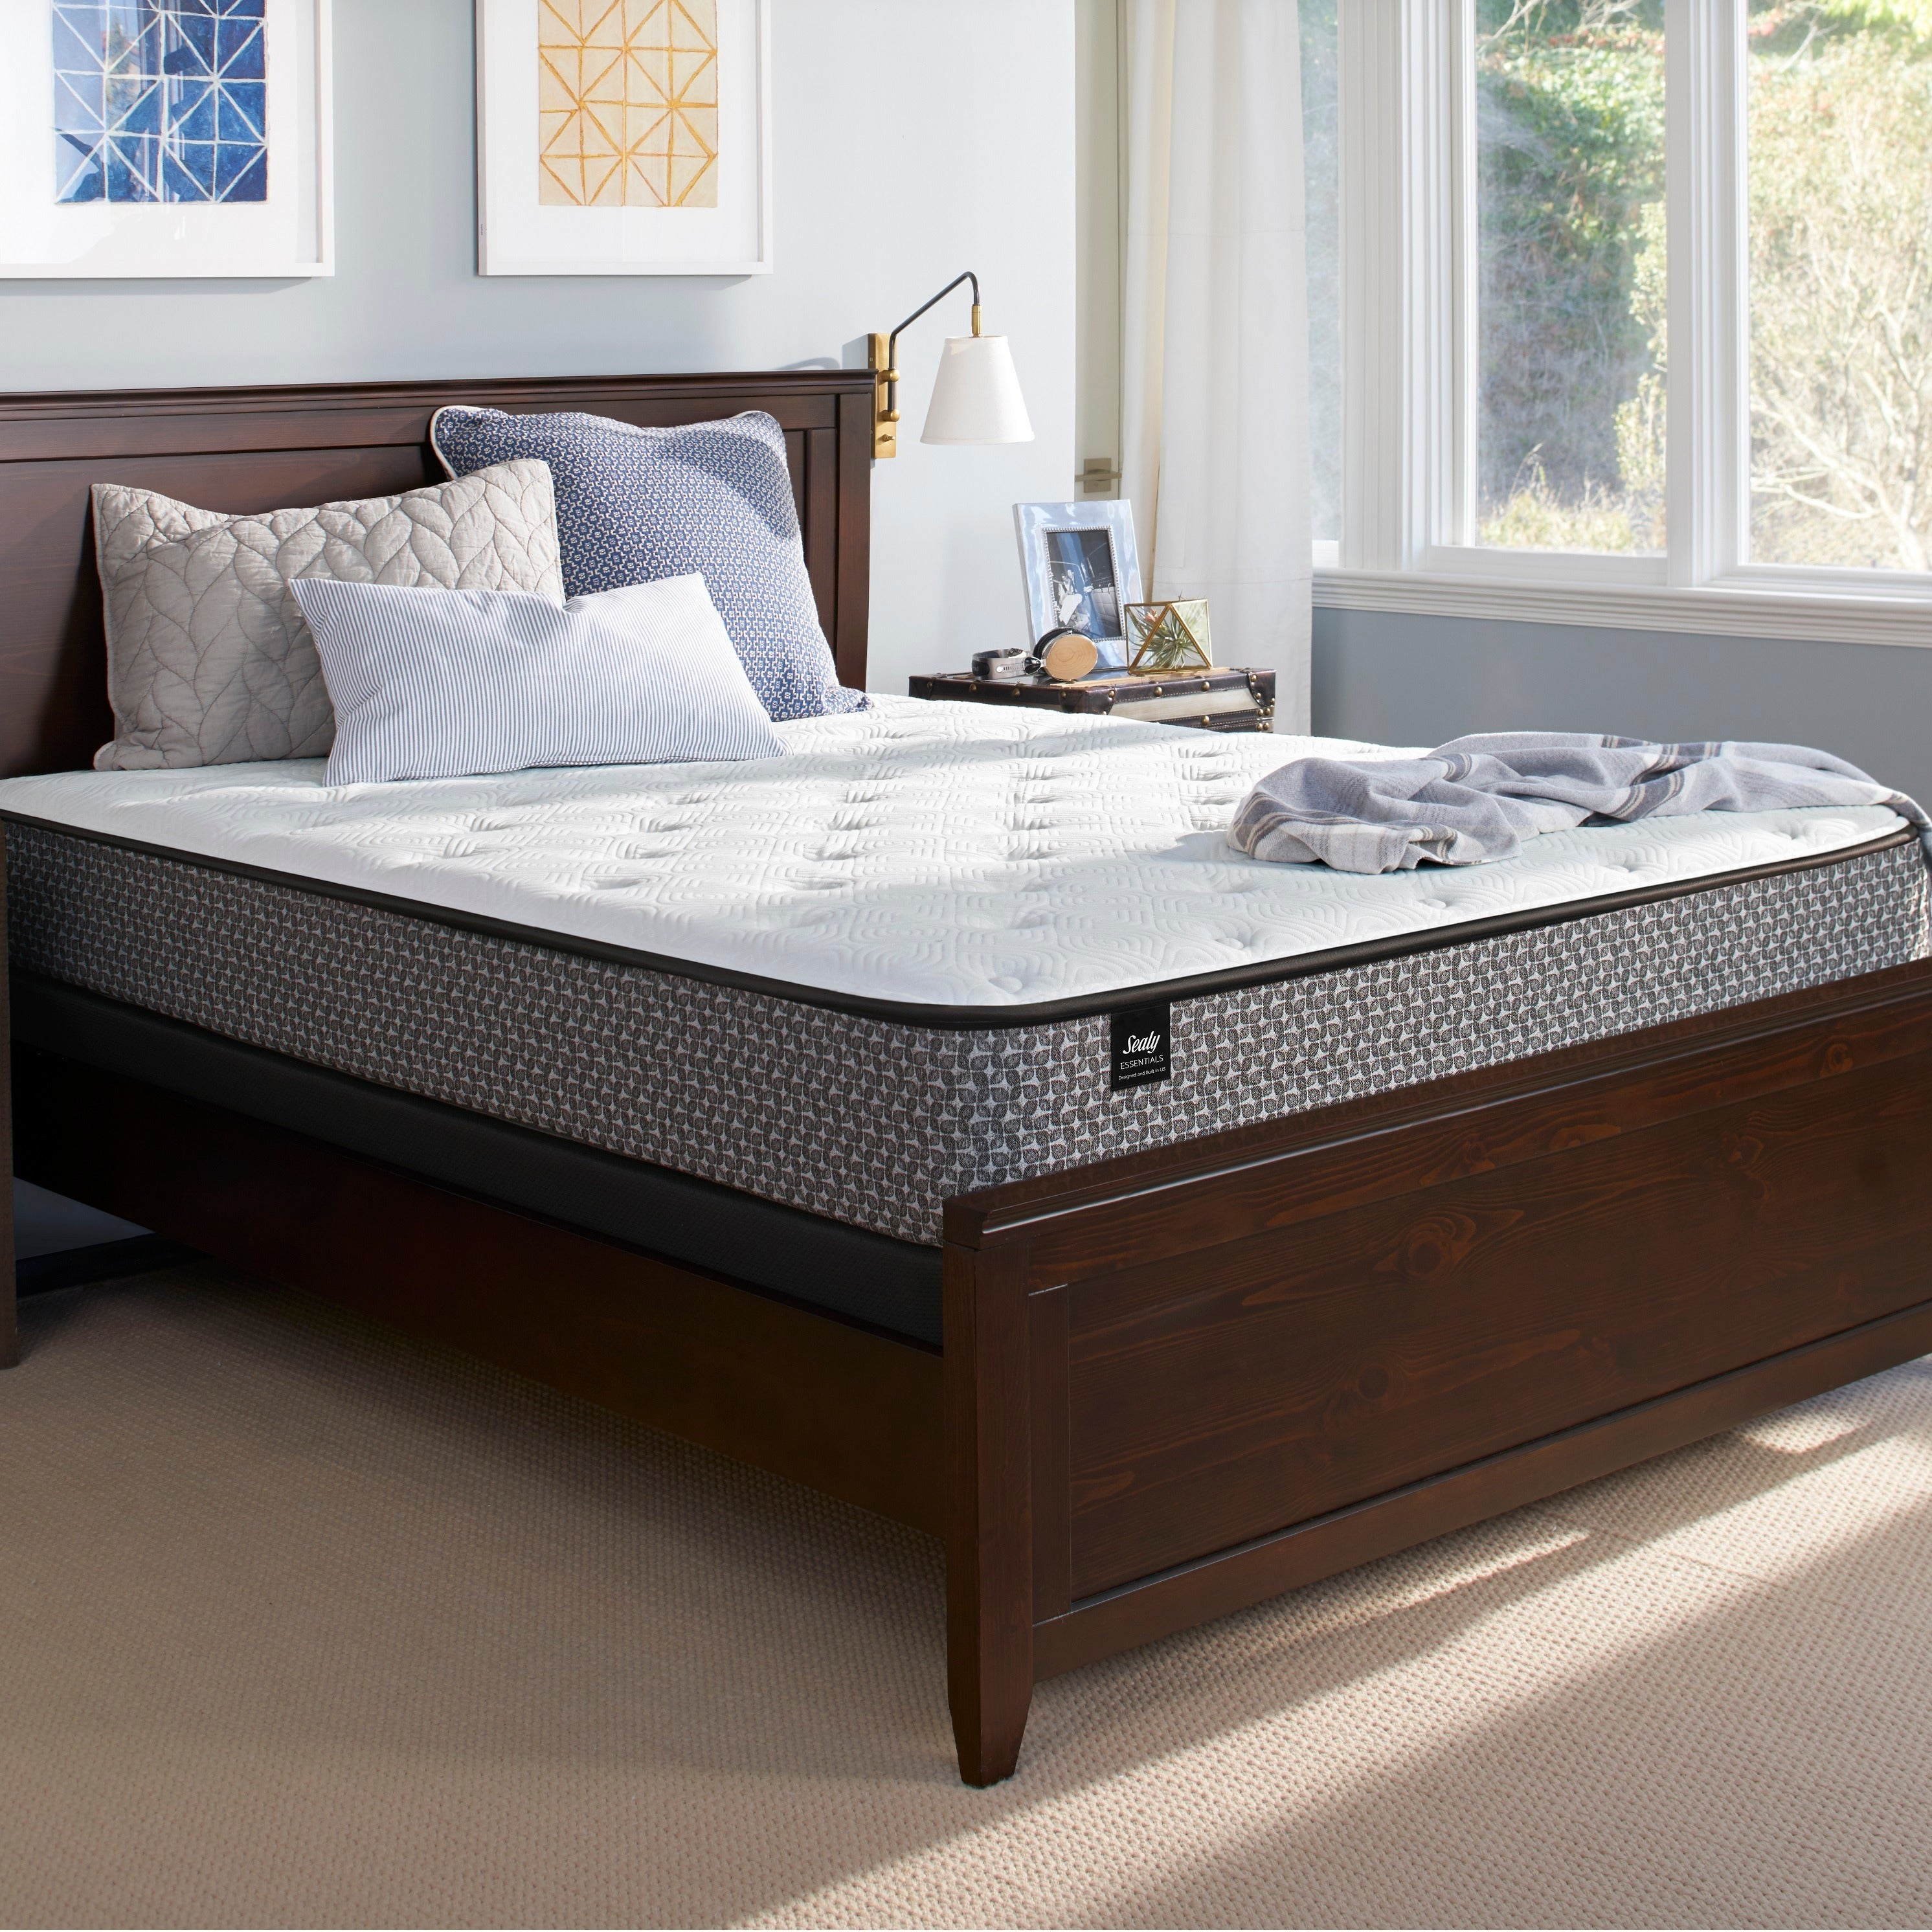 k review qbed s prelude platform queen bed write mattress tepperman size a preludge